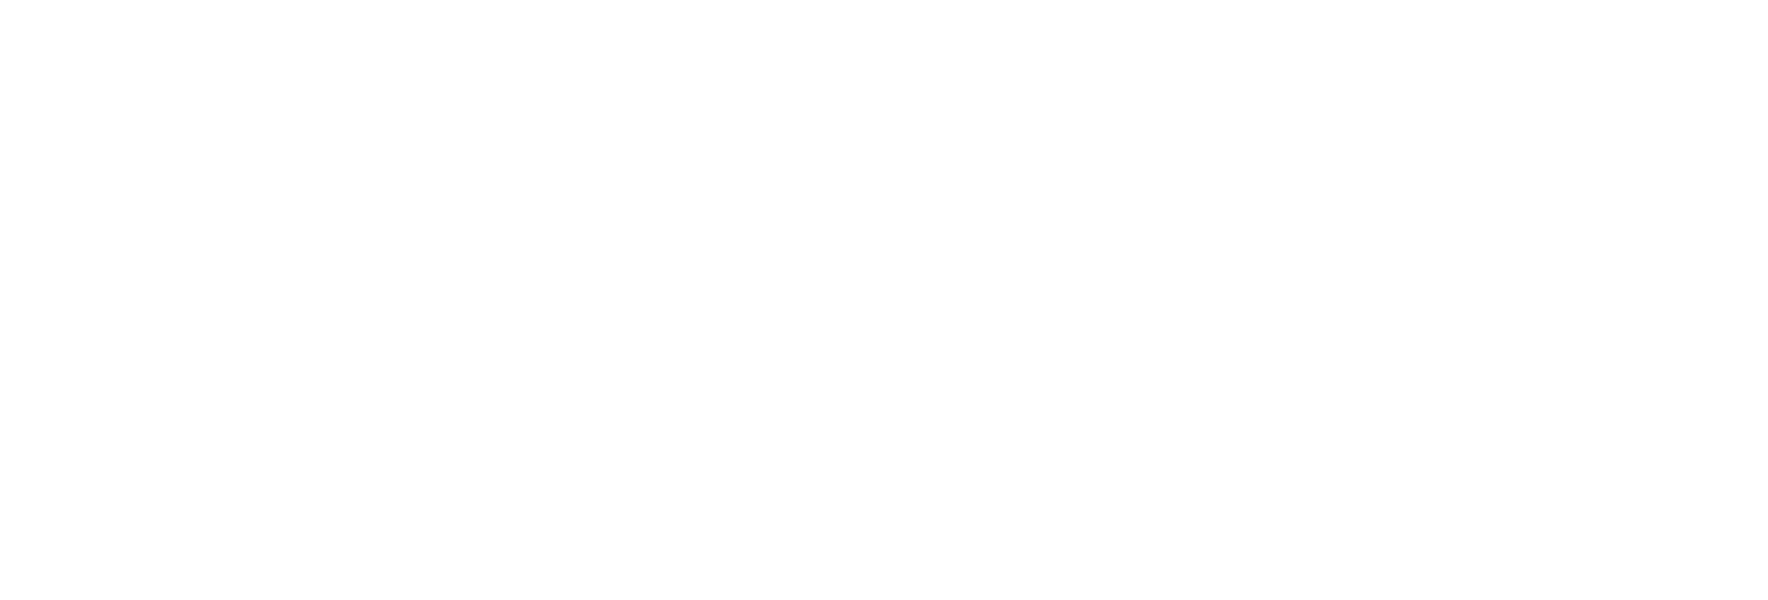 Building-Capital-Logo-White